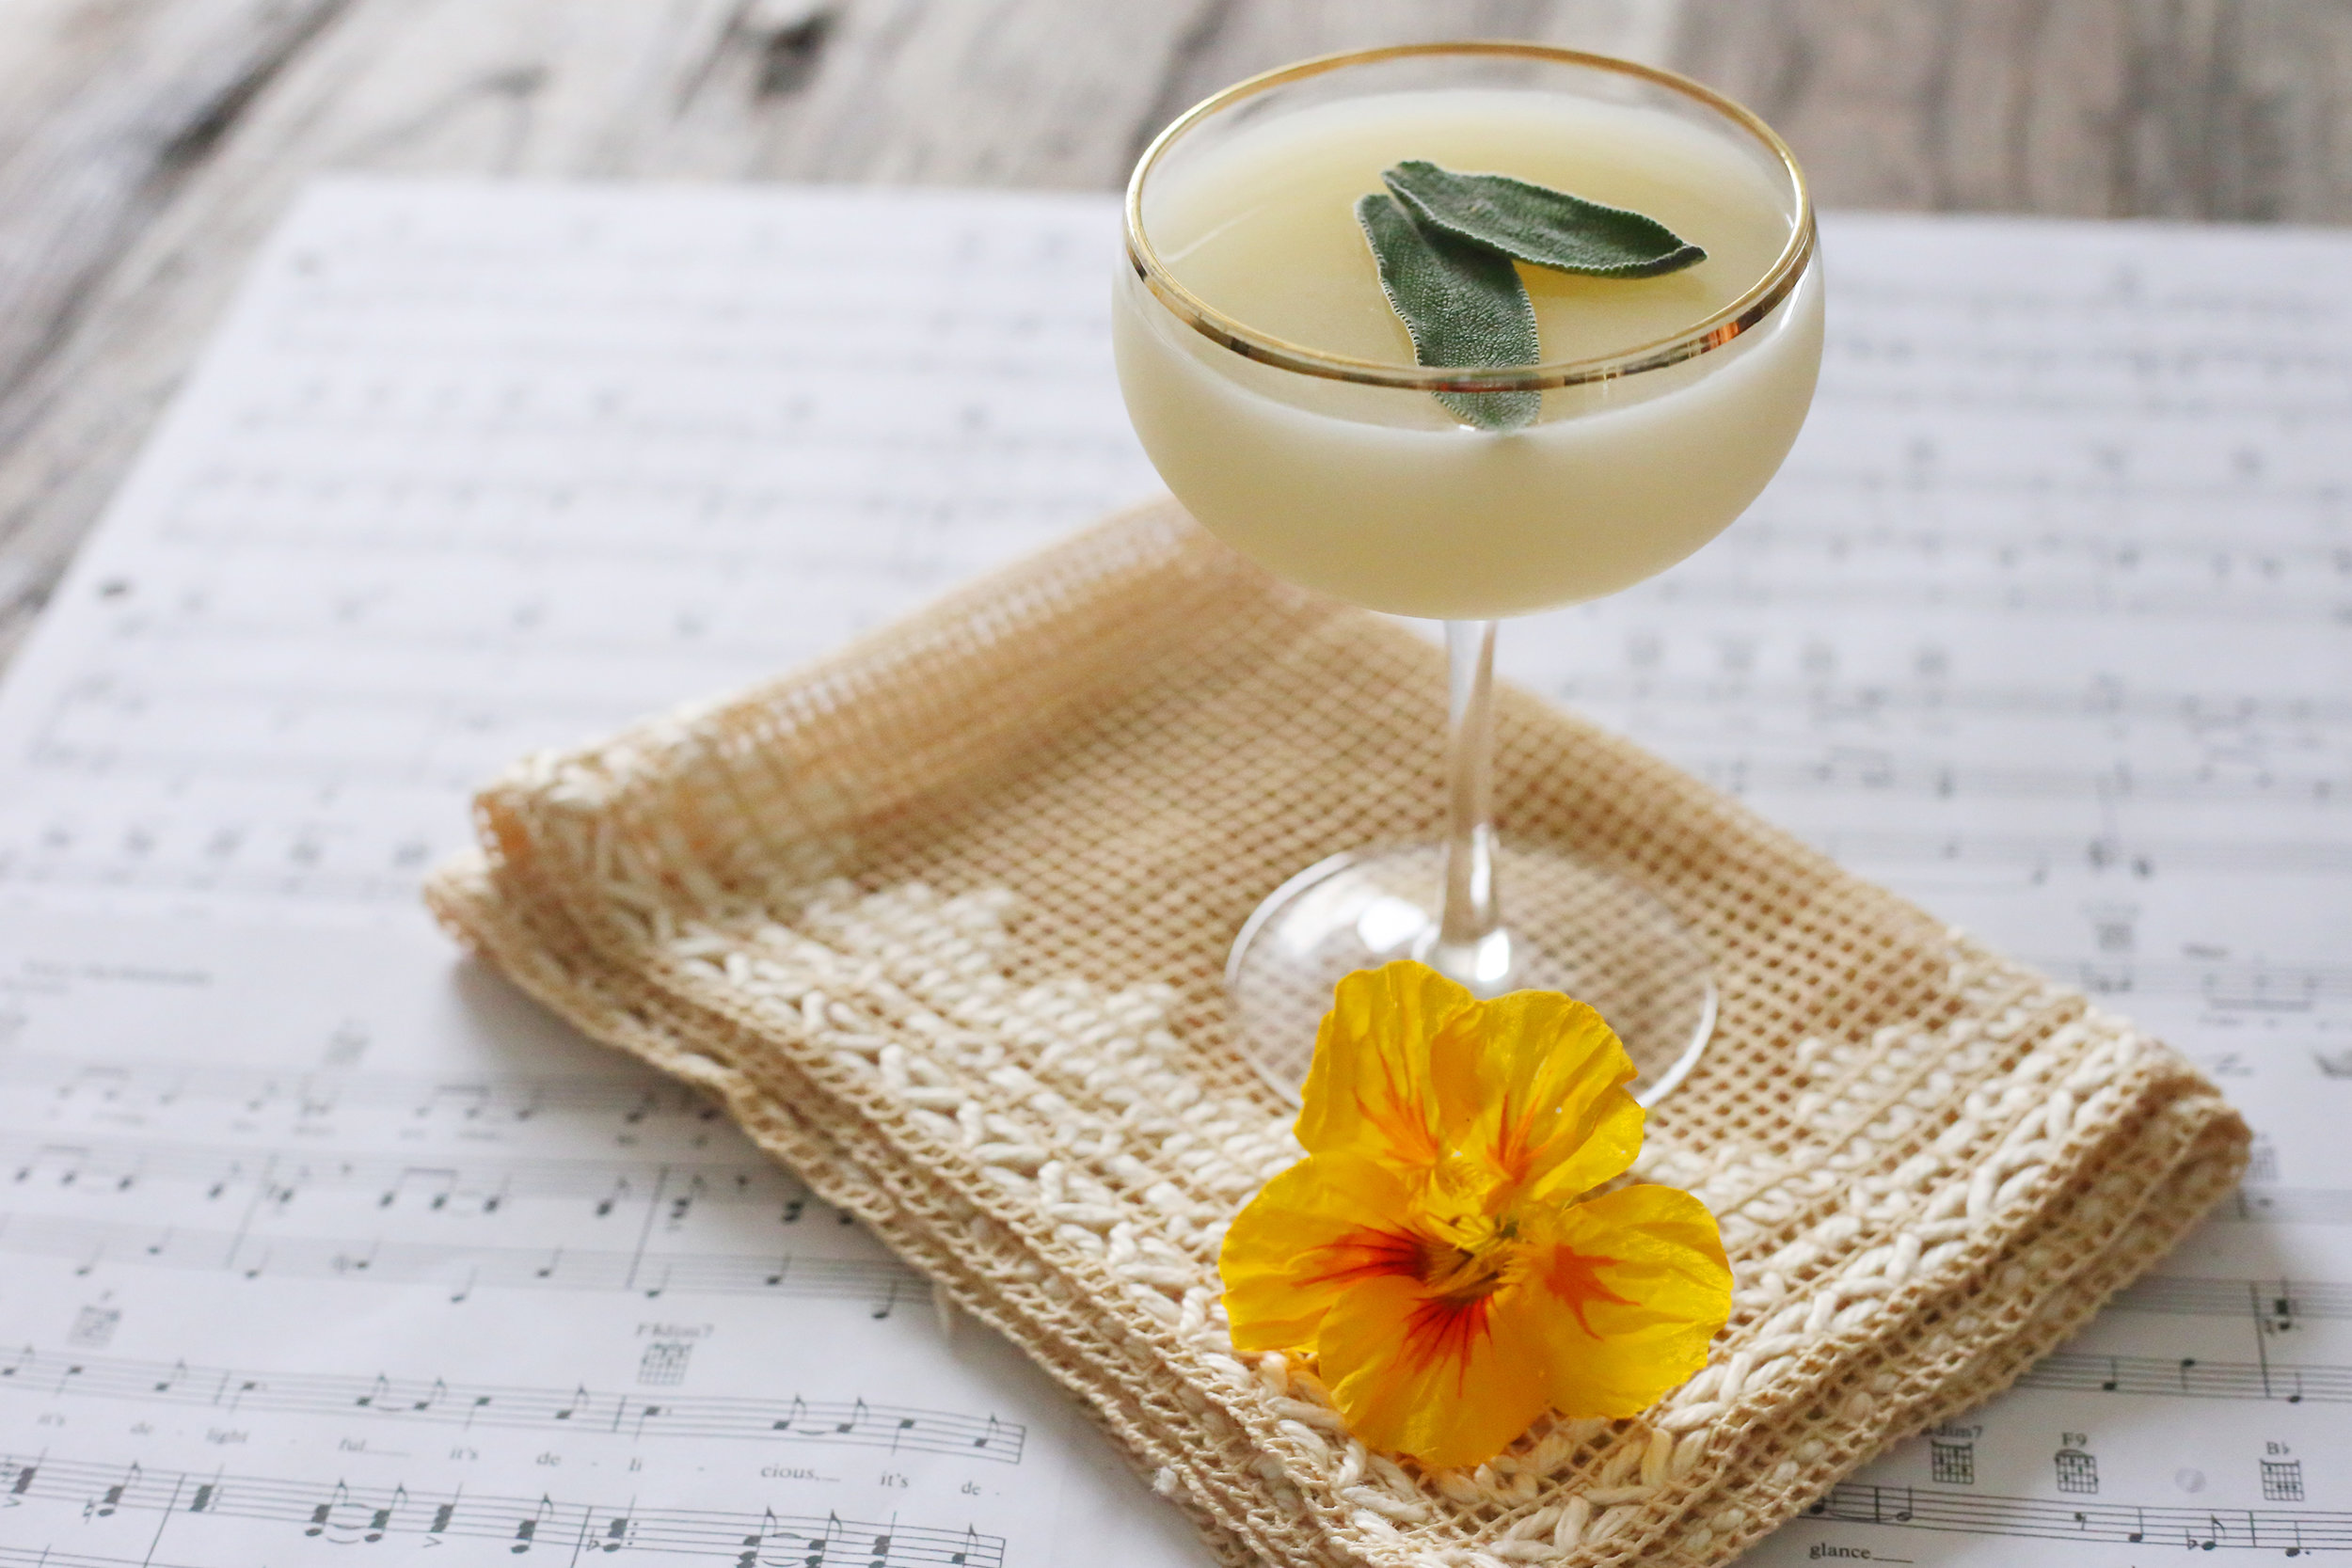 Song_And_Tonic_Artisan_Cocktails.jpg